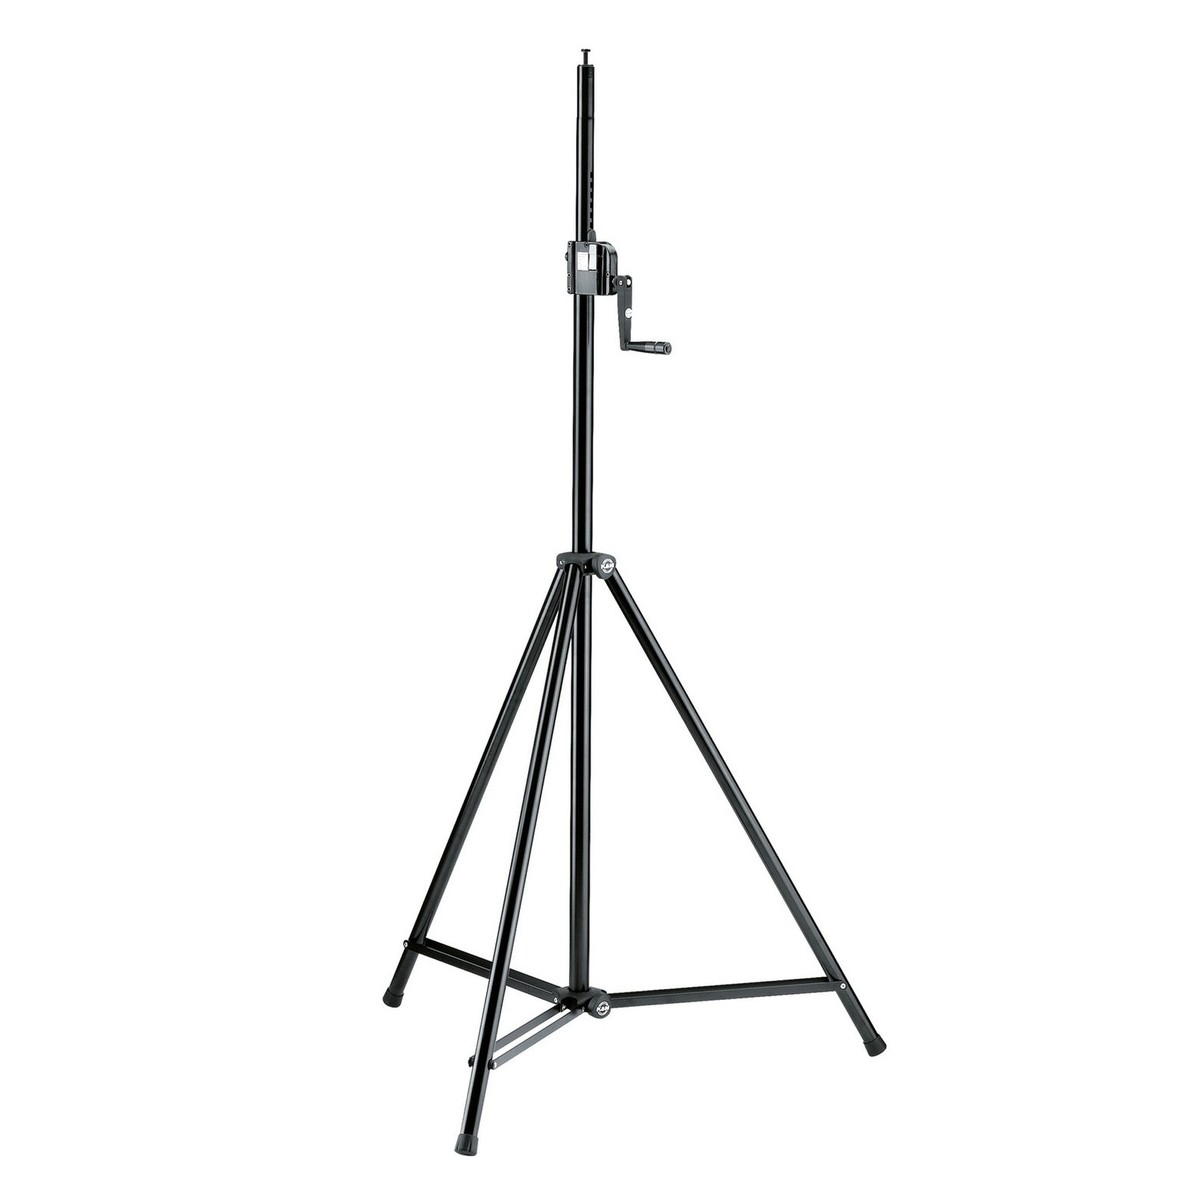 K Amp M 246 1 Lighting Speaker Stand Black At Gear4music